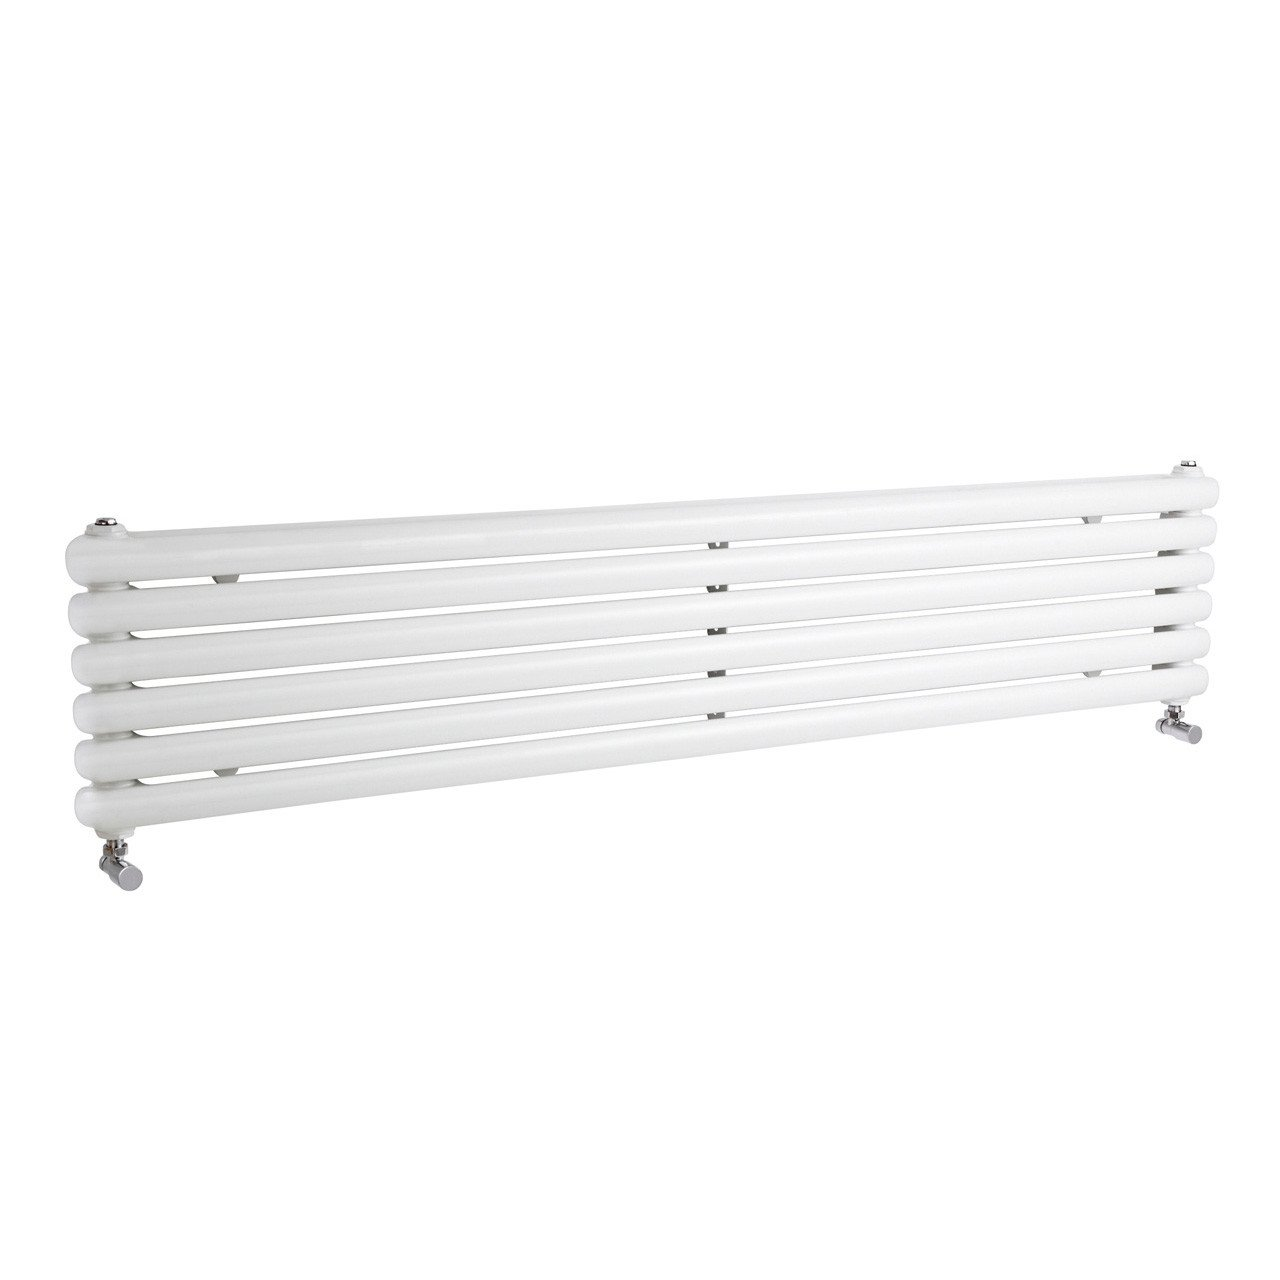 Hudson Reed Salvia Radiator 1800mm x 383mm - HSA001